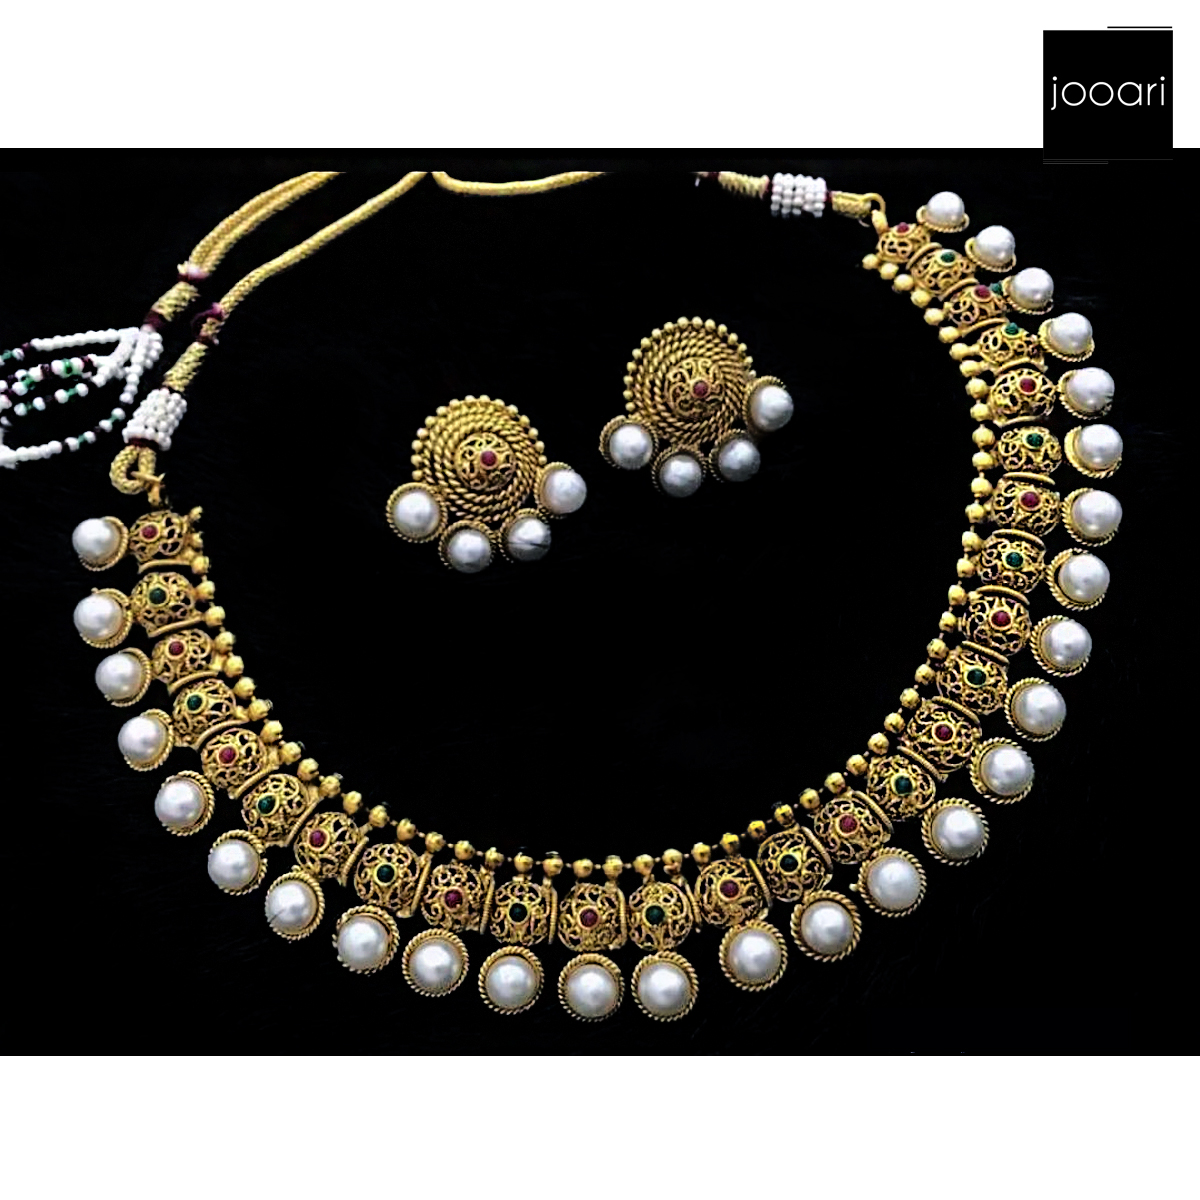 New Antique White Pearl Multicolored Pure Copper Designer Necklace Set with Earrings for Women and Girls